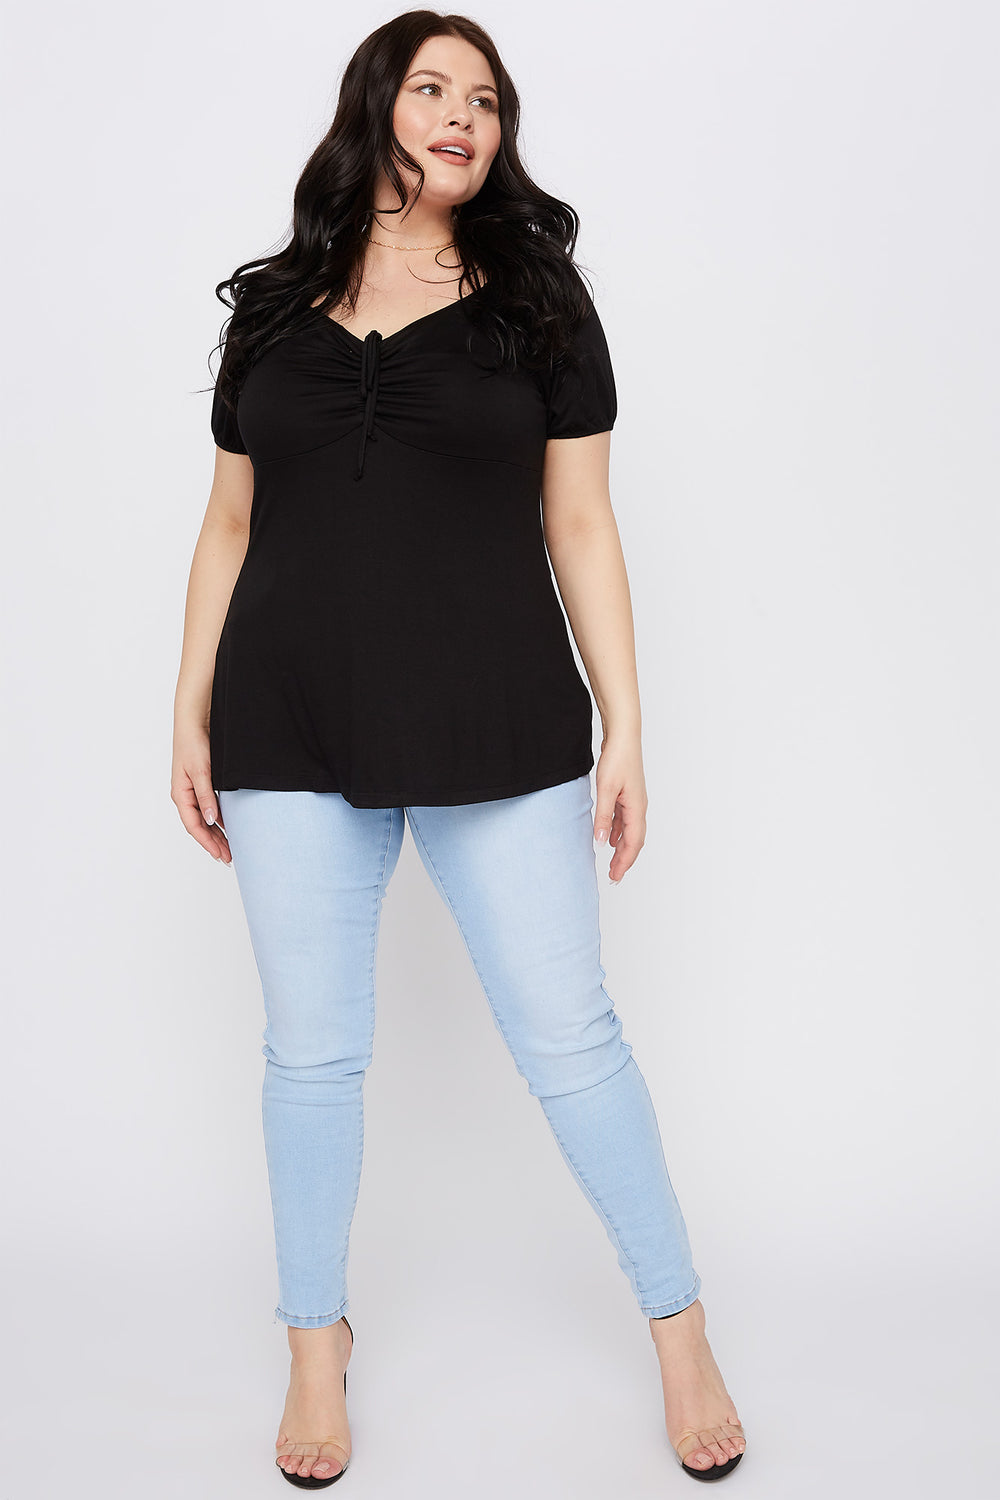 Plus Size Ruched V-Neck Short Sleeve Top Black